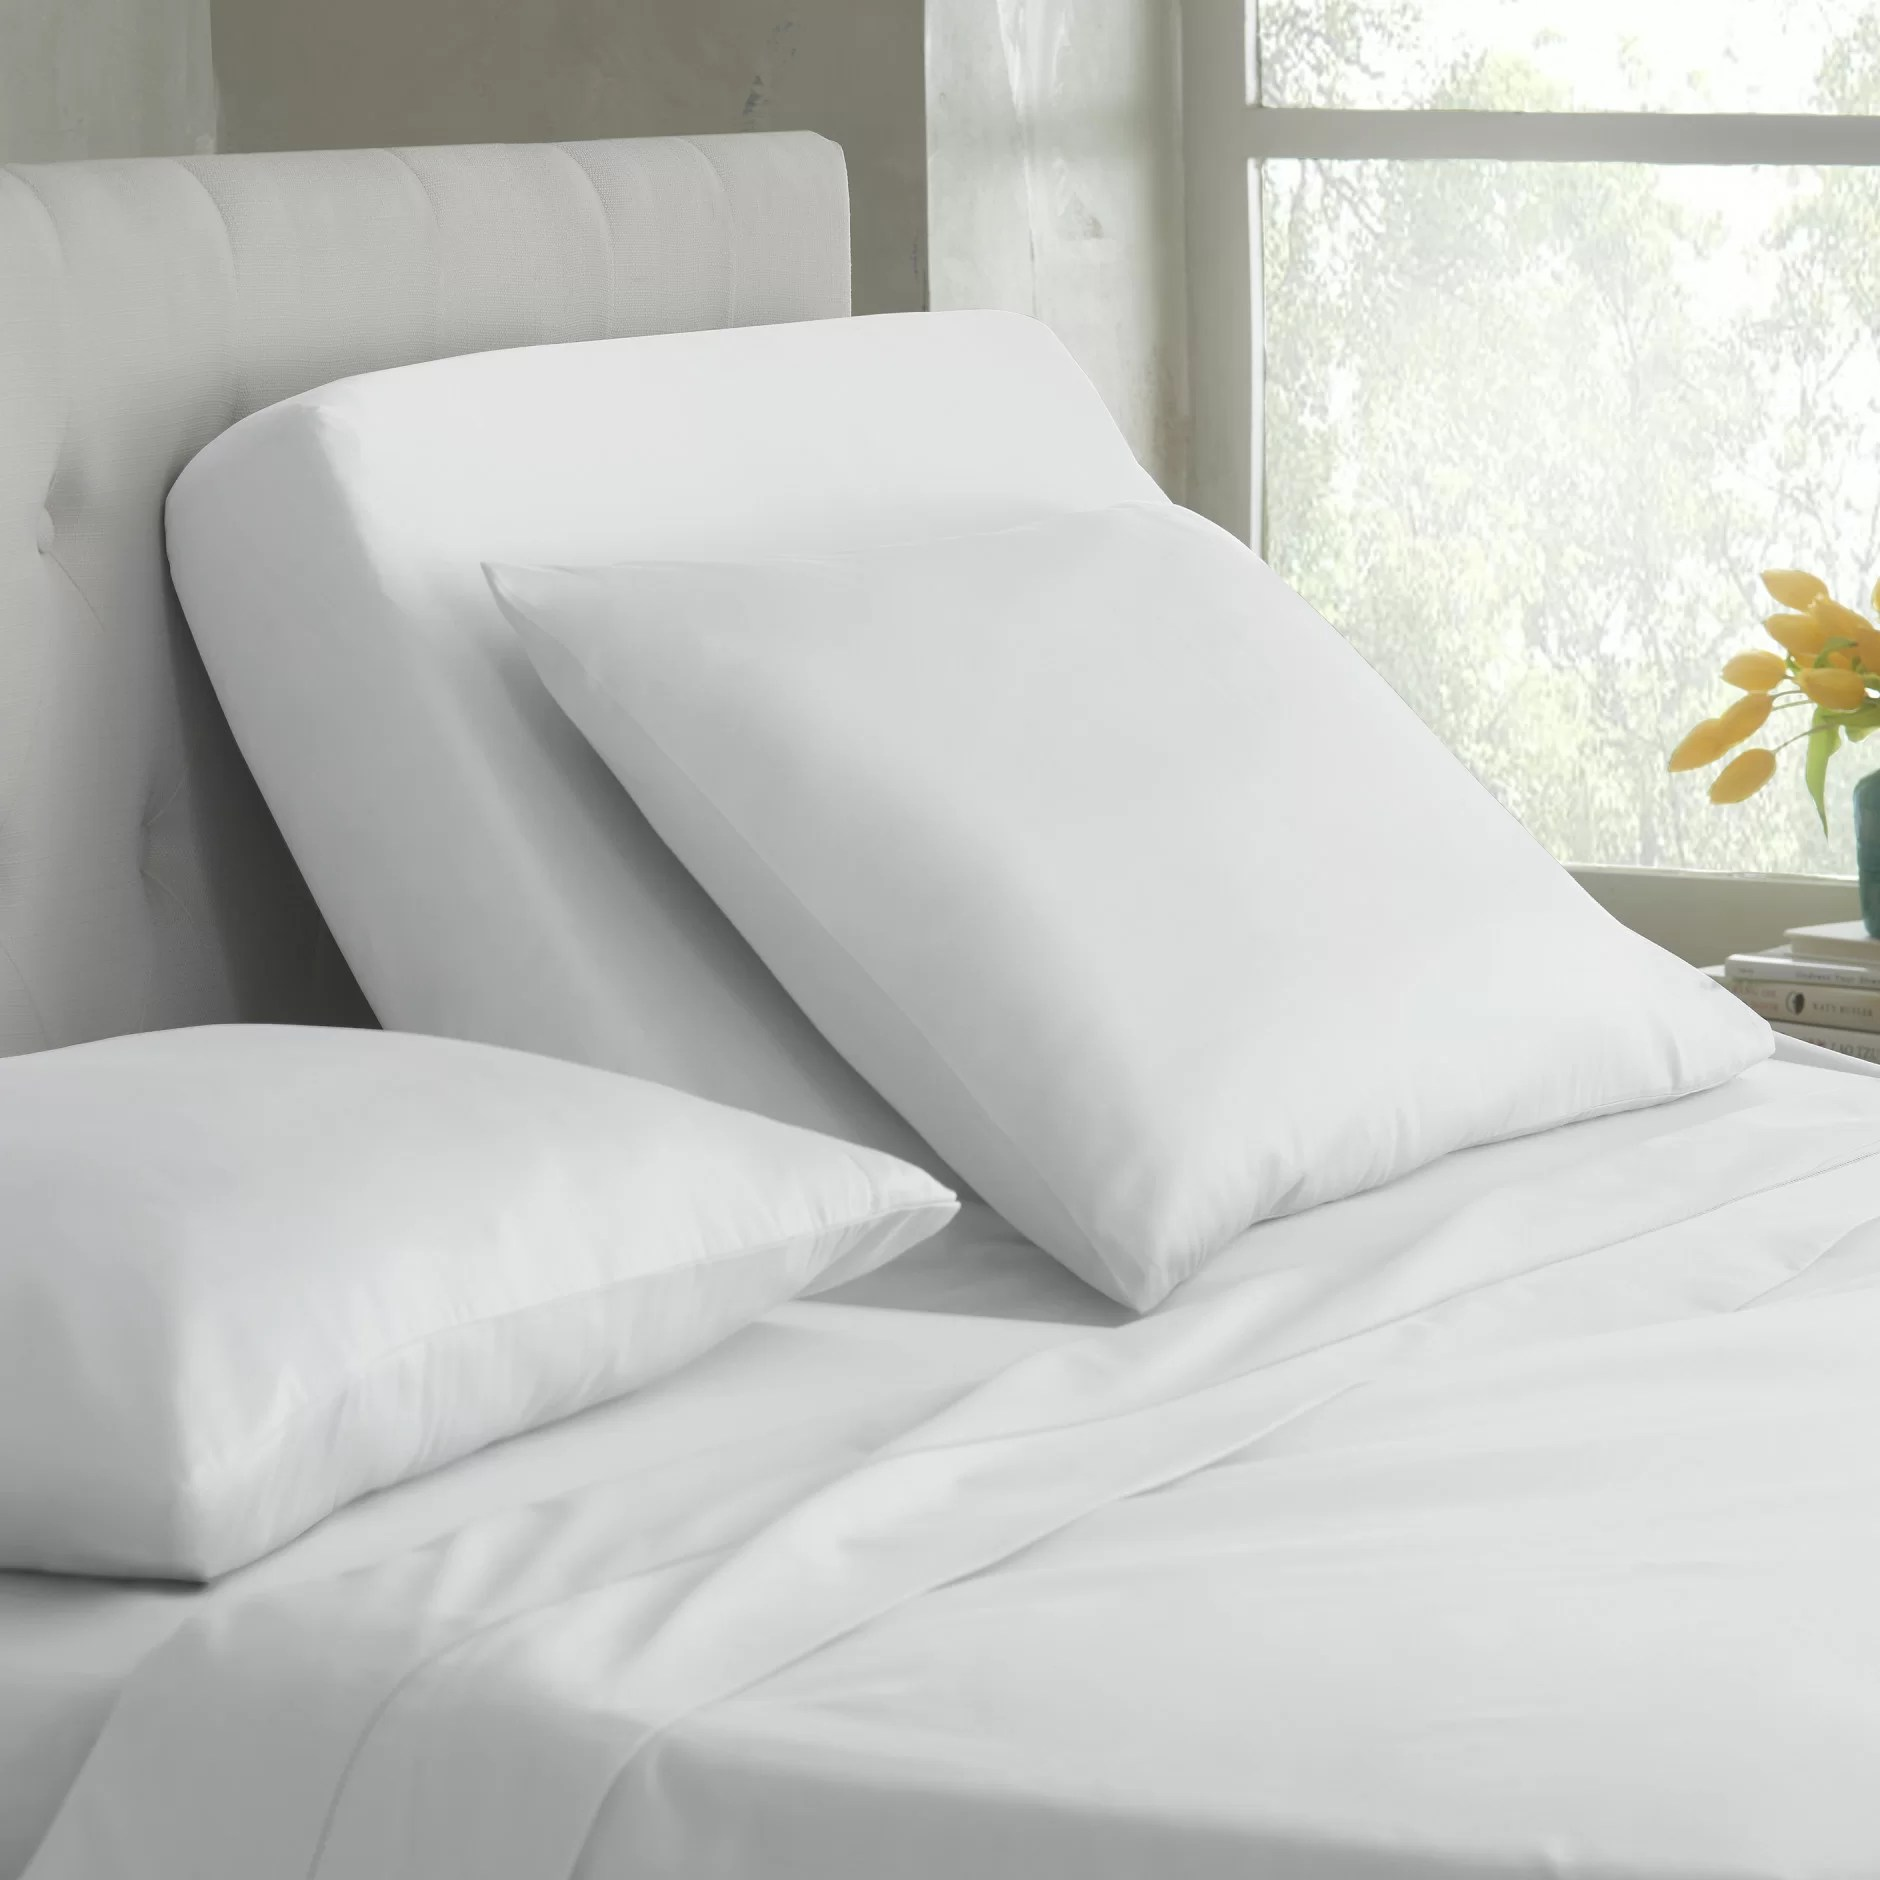 Deep Fitted Sheets Queen Size 400 Thread Count Cotton Sheet Set